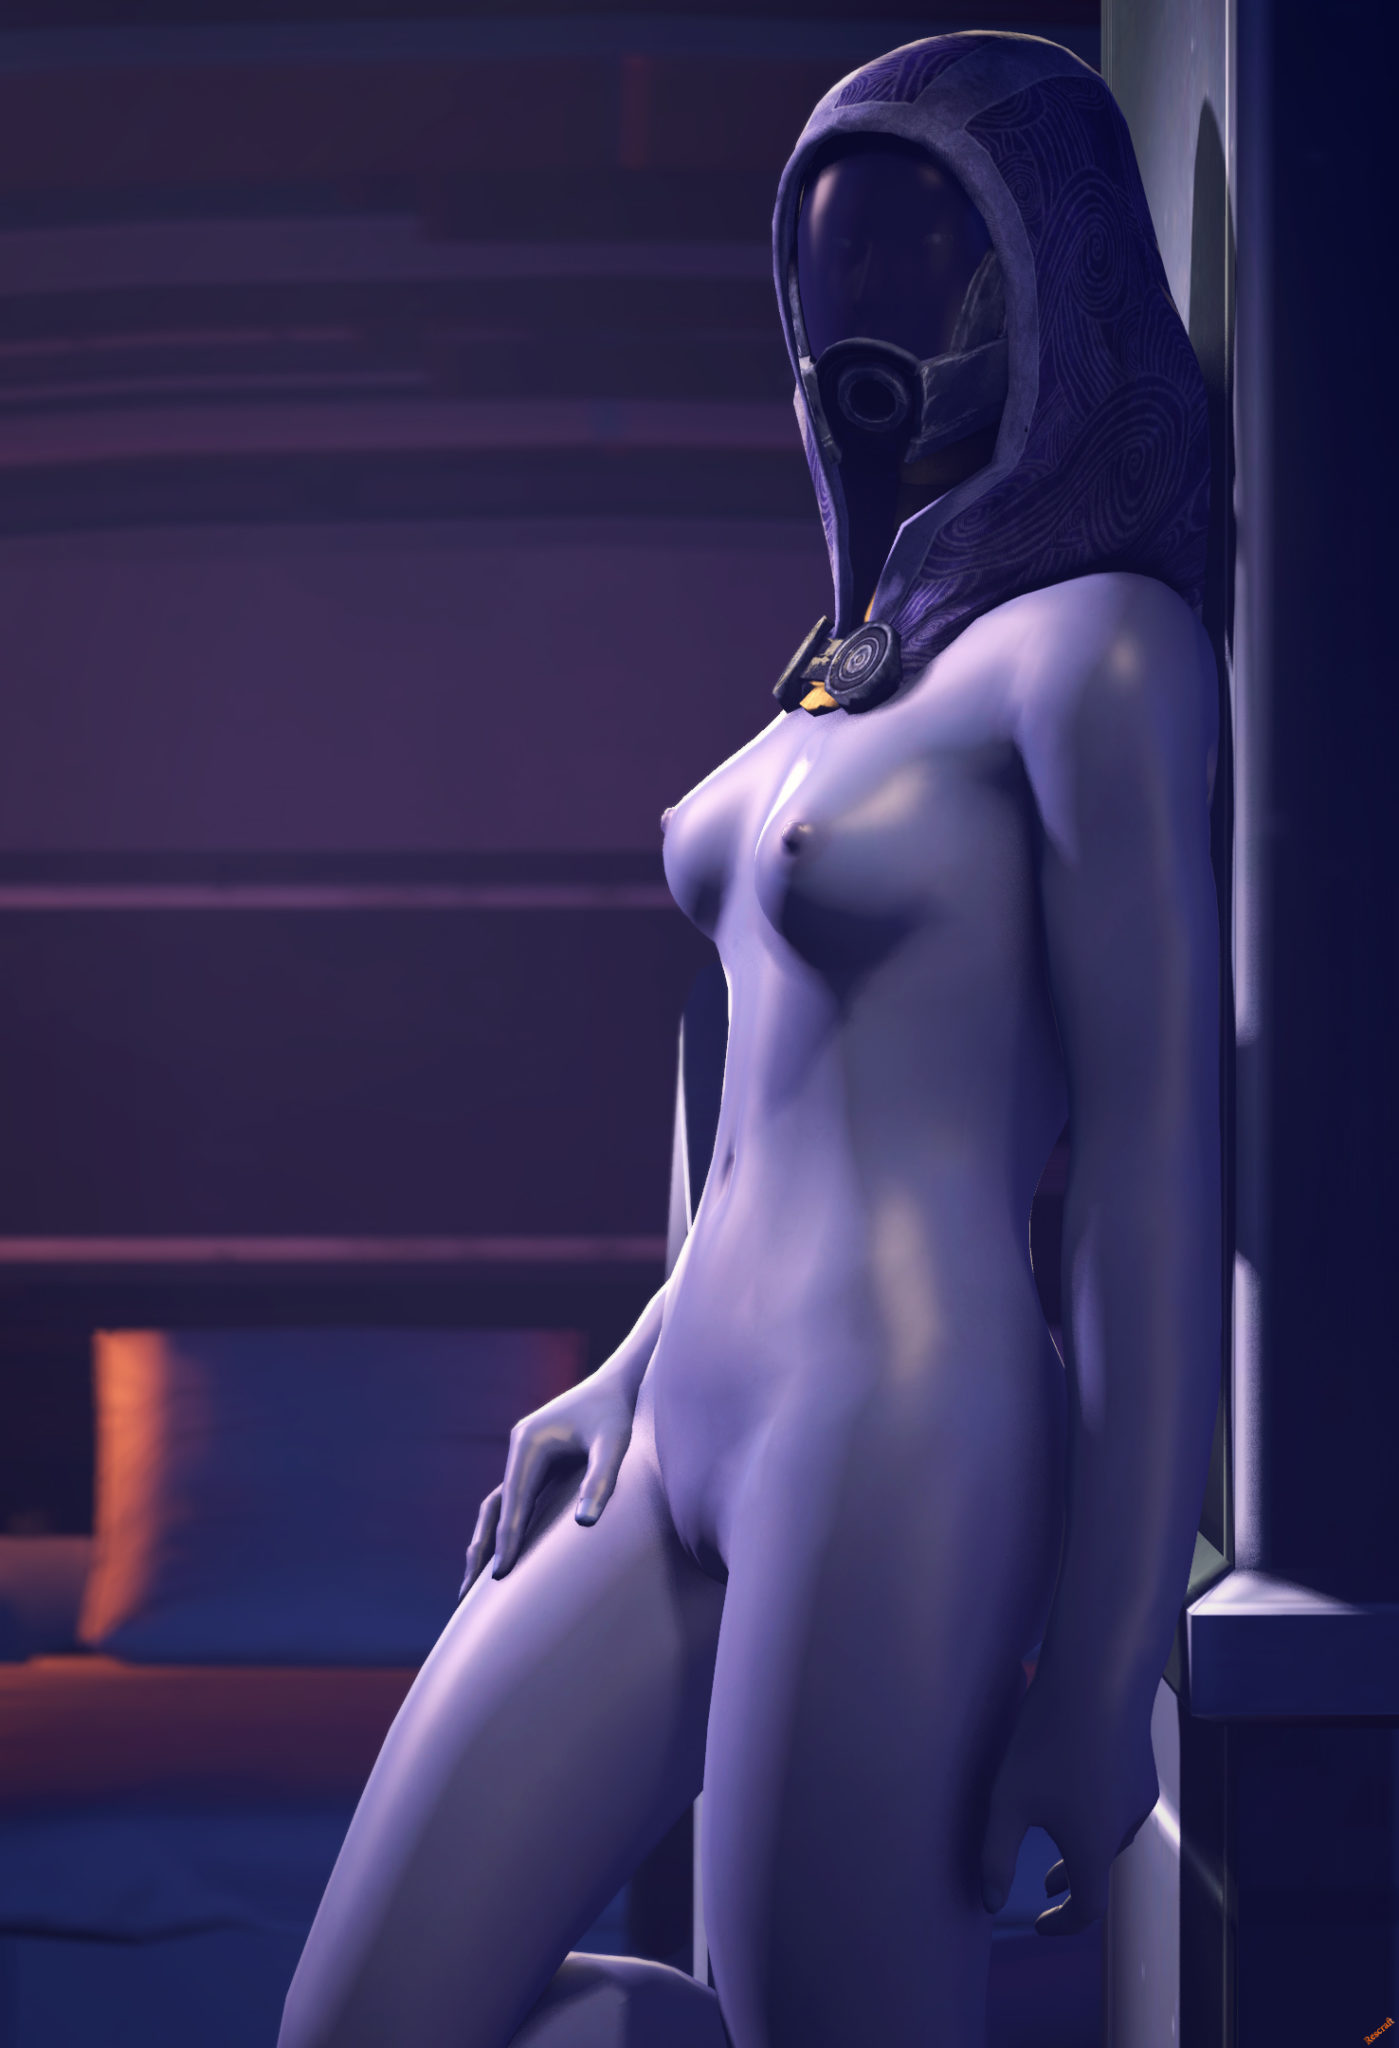 Mass effect porn rule 34